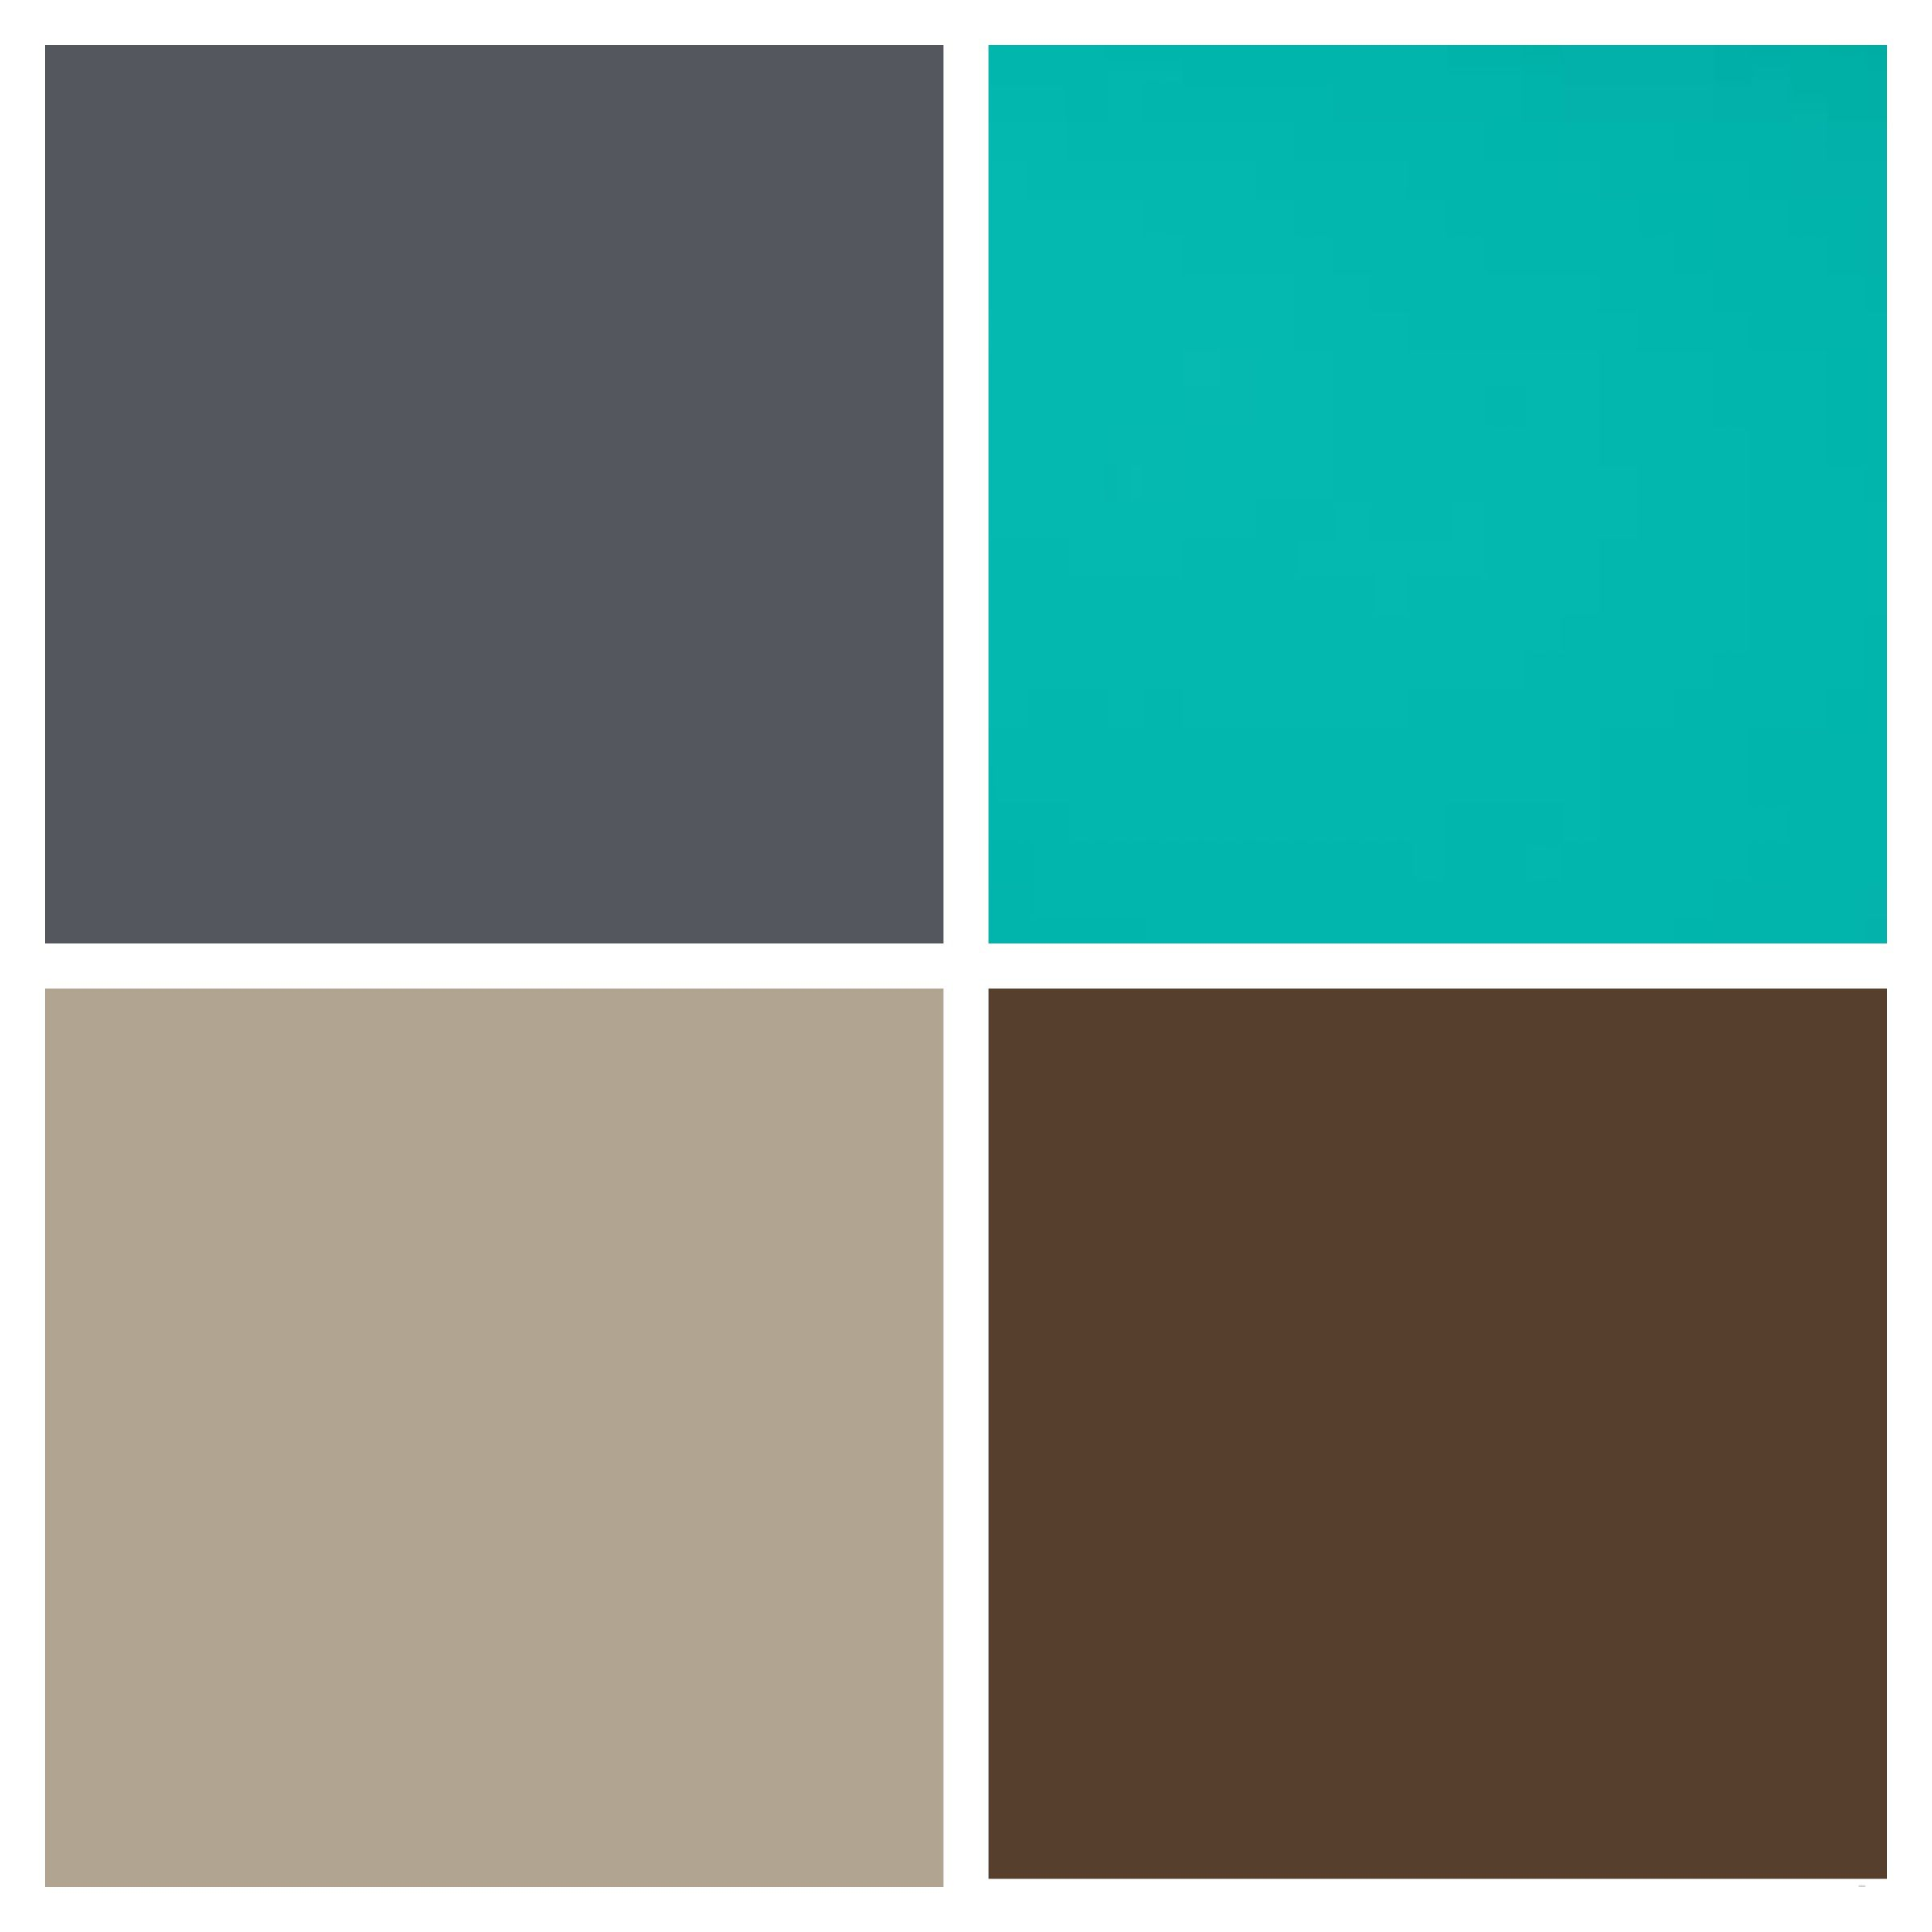 Bedroom color palette slate gray storm grey turquoise for Ocean blue color combinations